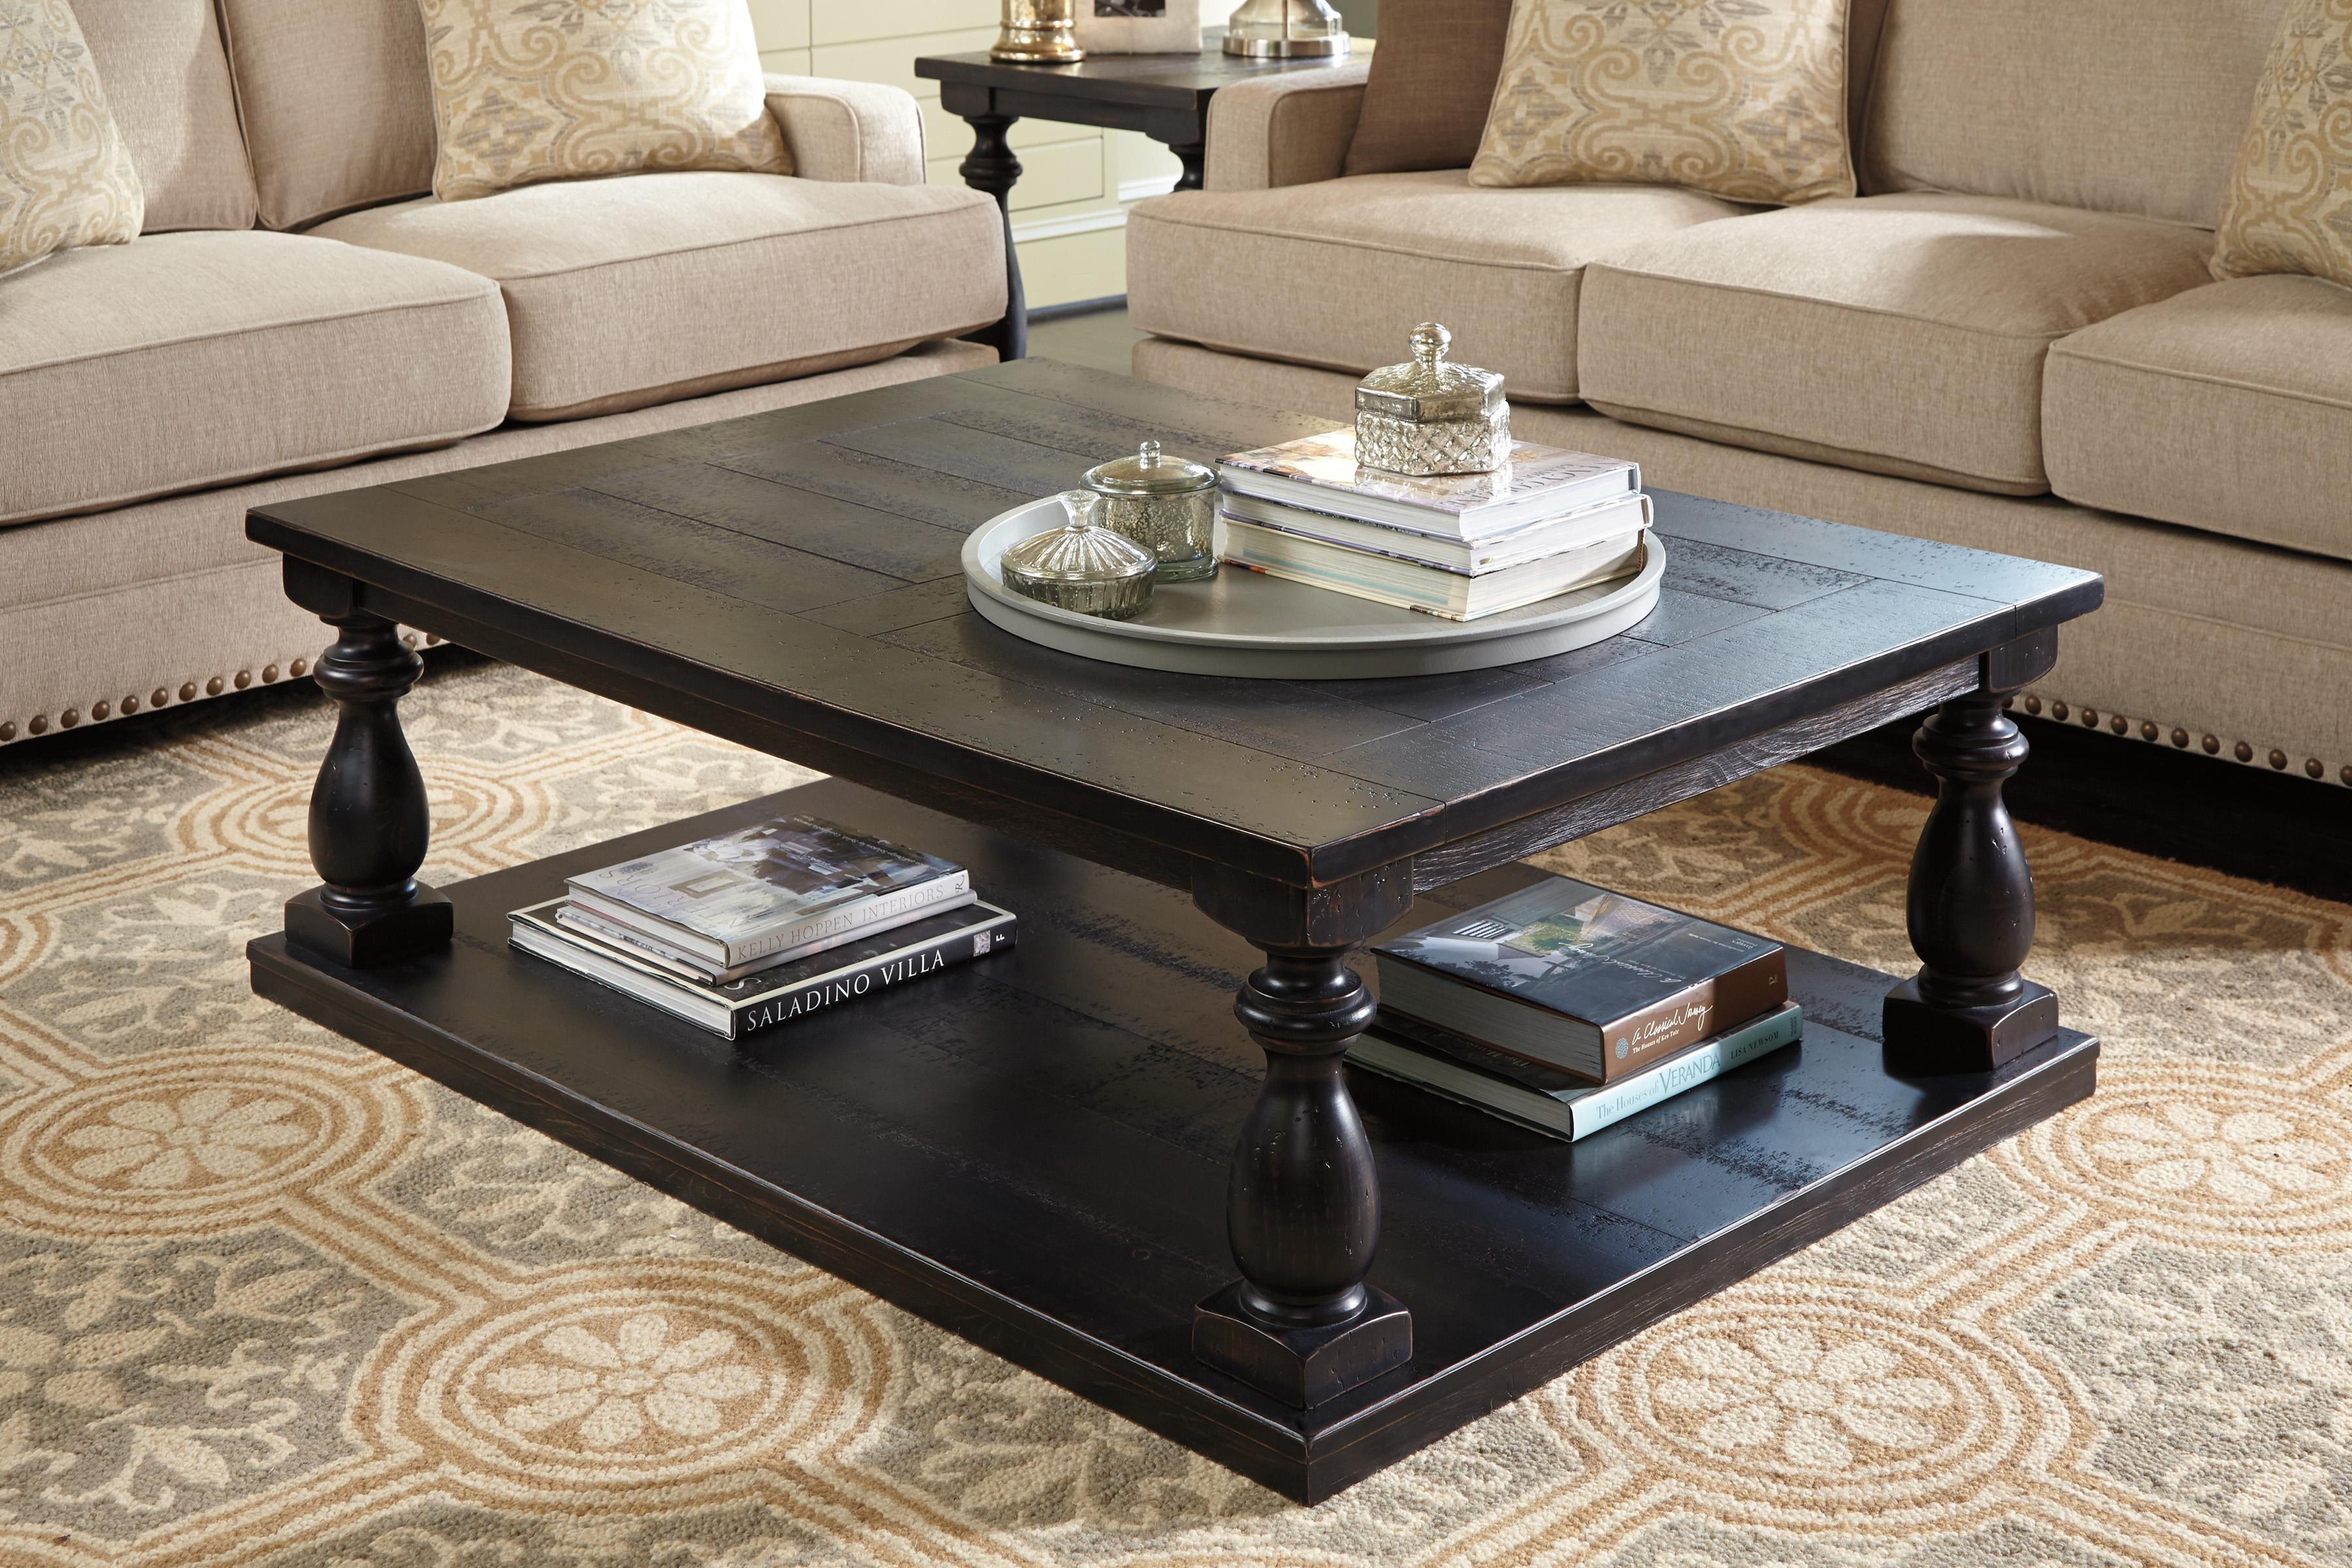 Ashley (signature Design) Mallacar Rustic Black Finish. Glass Dressing Table. Long Reception Desk. Mobile Standing Desk. Coffee Table Industrial. Foldable Ping Pong Table. Patio Table Plans. White Dining Table. Kitchen Cabinet Desk Units